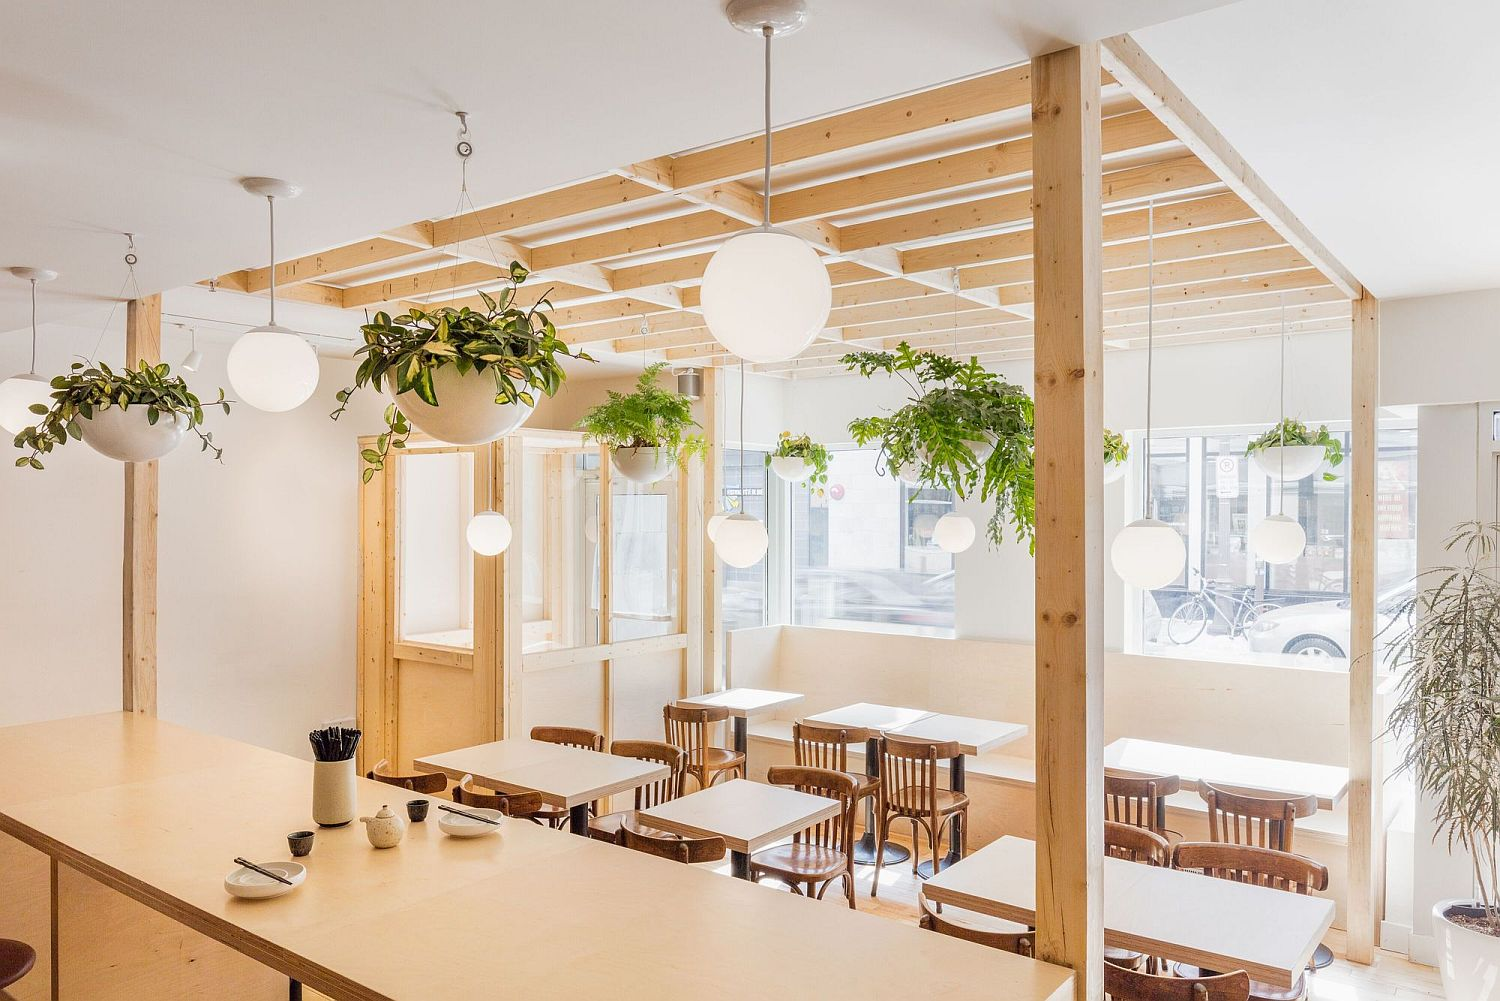 Hanging plants add greenery to the cafe interior